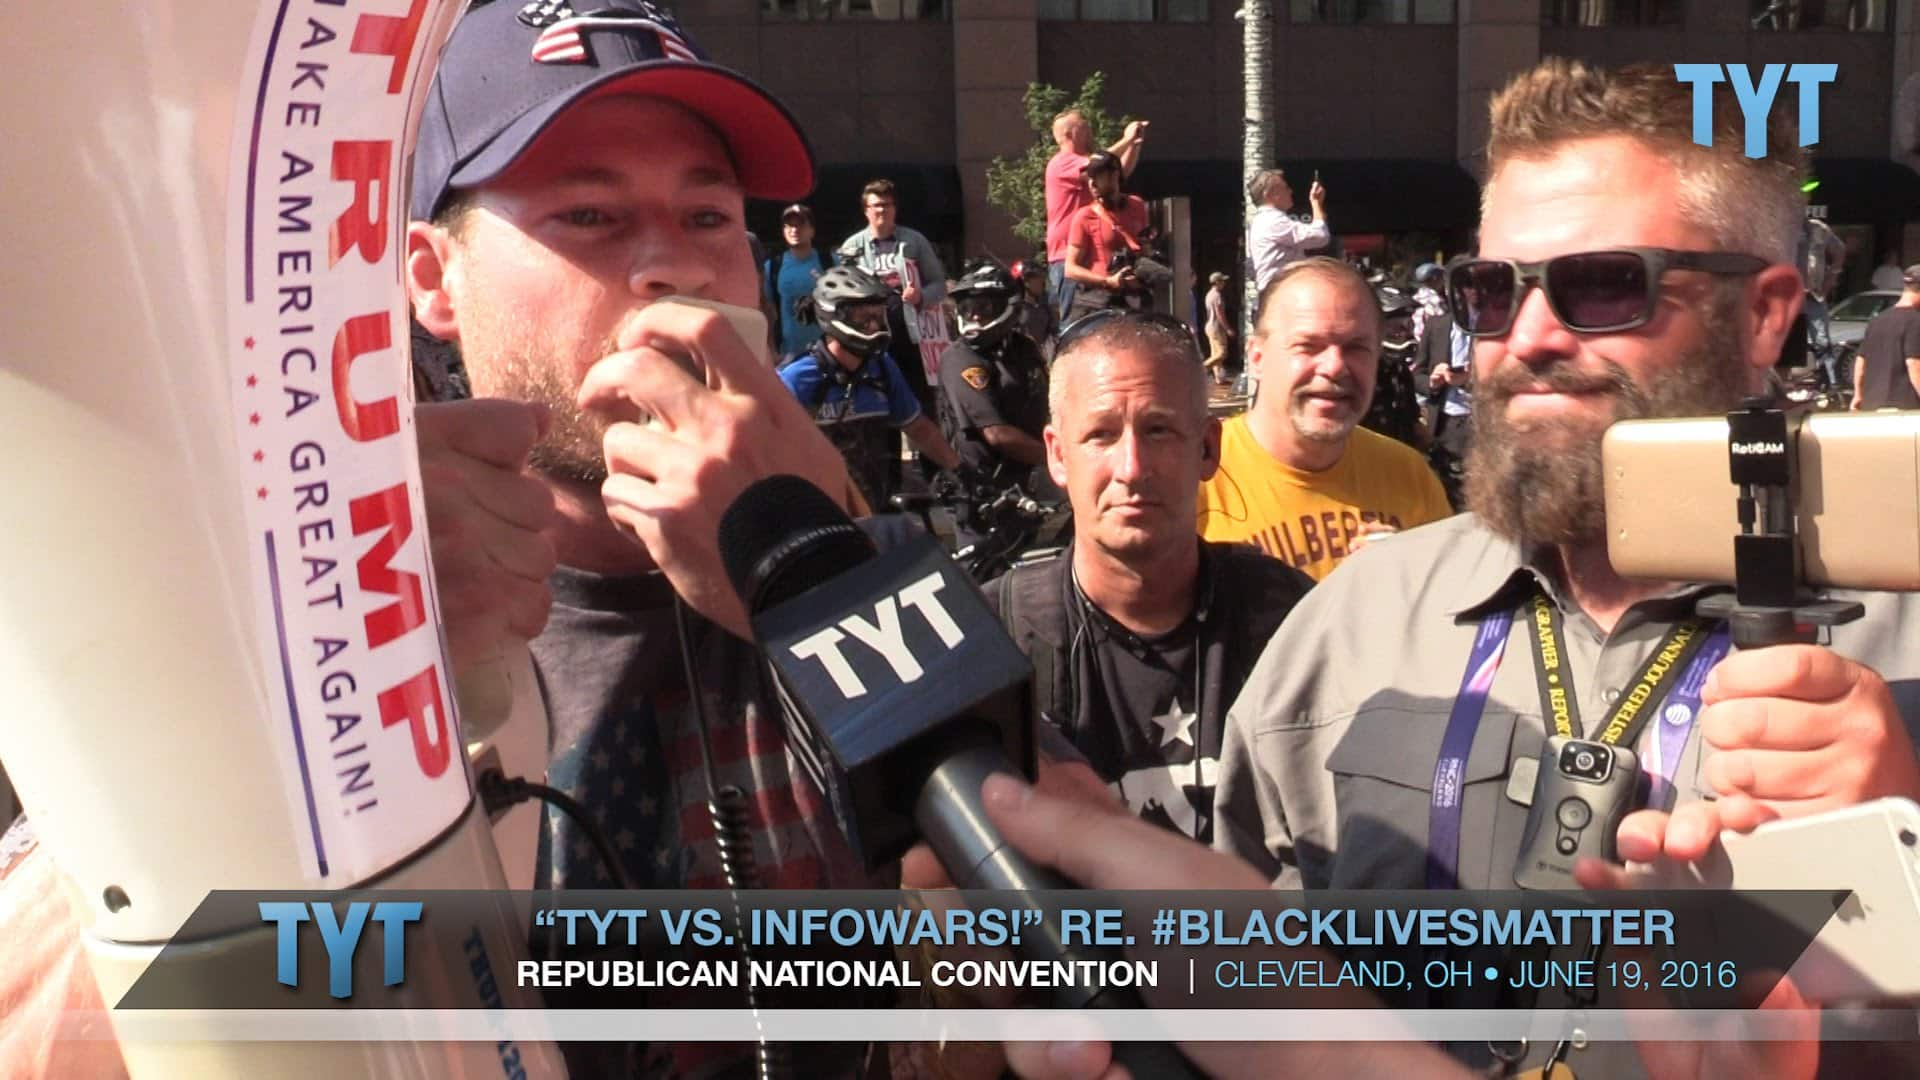 TYT vs. InfoWars re. #BlackLivesMatter At RNC Convention 3